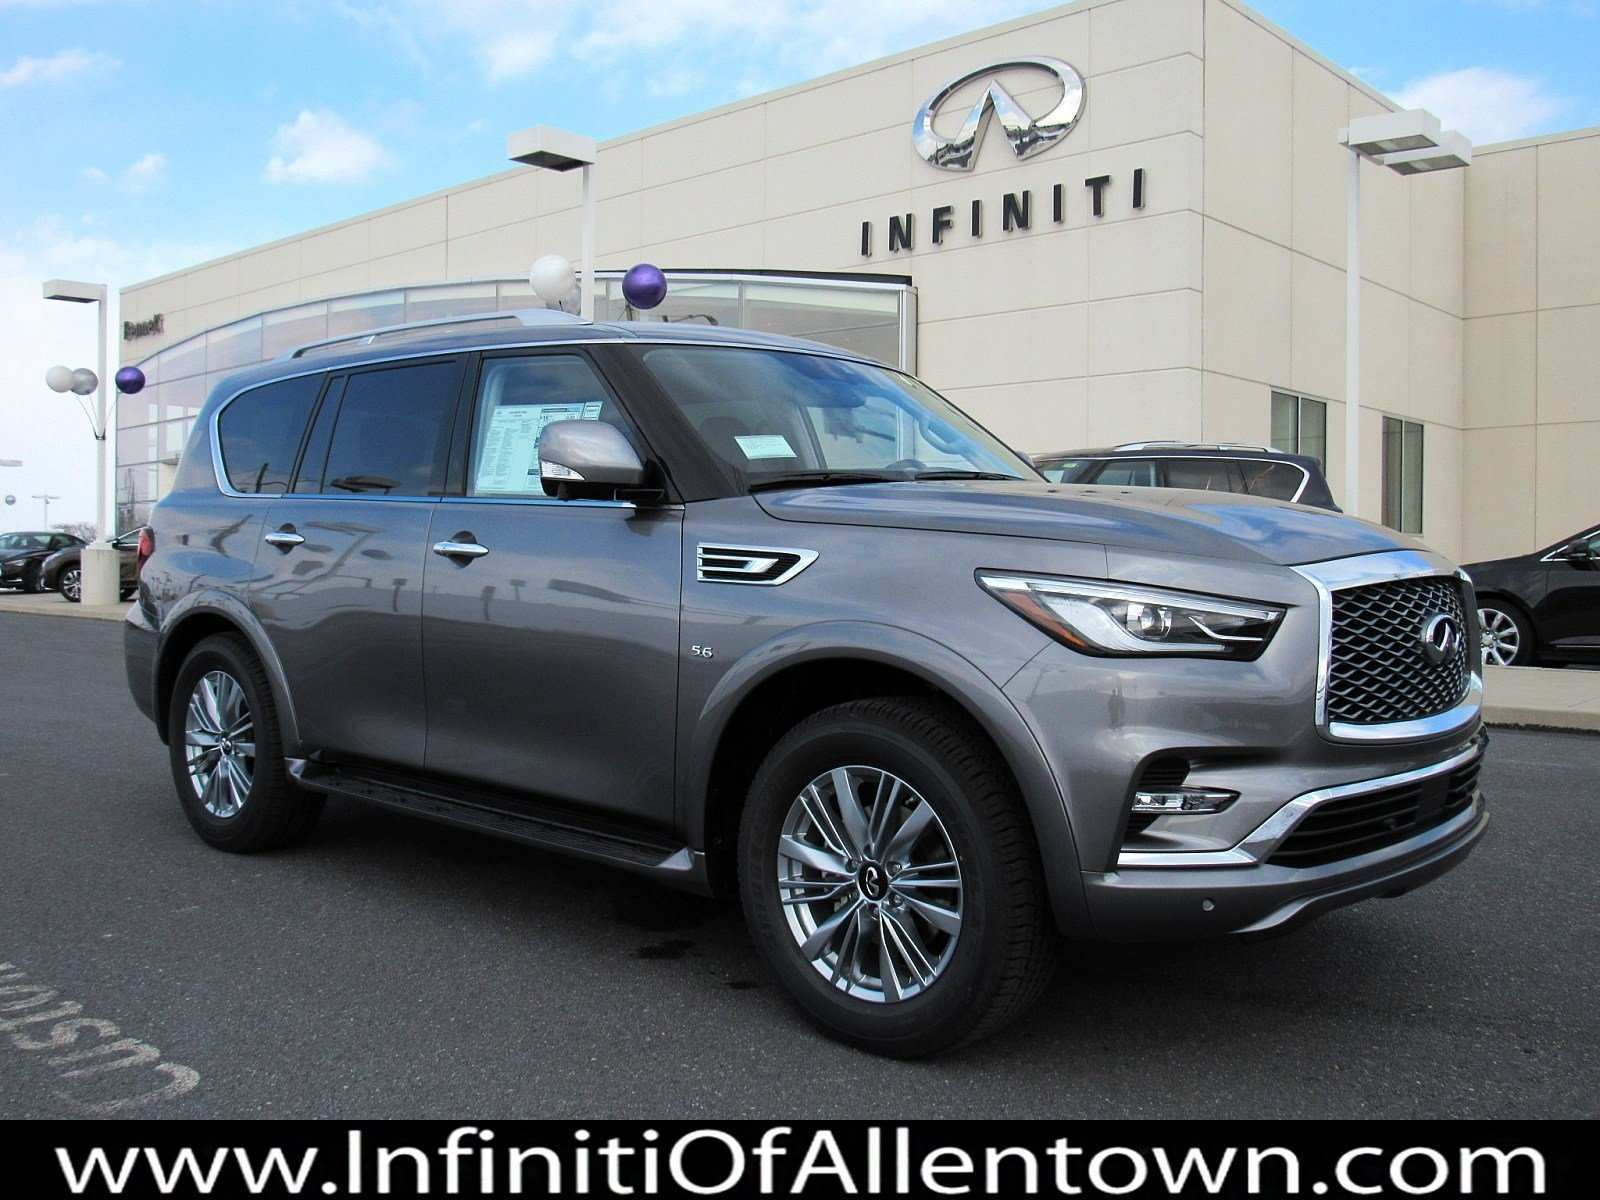 58 The Best 2019 Infiniti Qx80 Suv Exterior And Interior